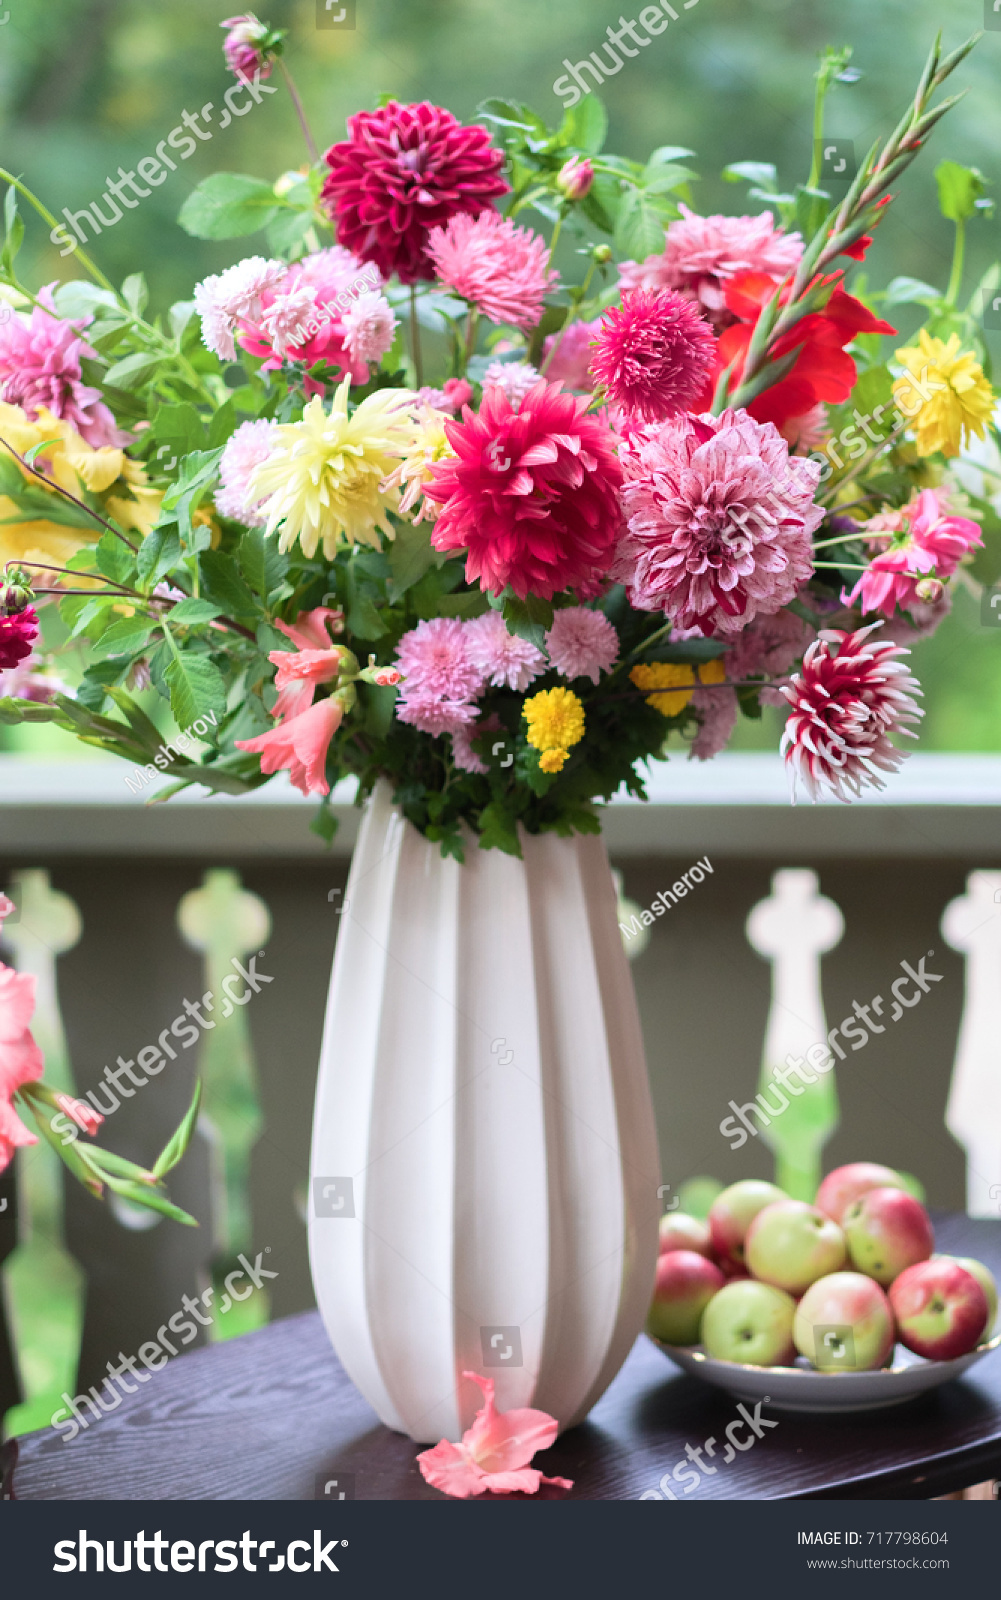 Bouquet asters dahlias flowers white vase stock photo royalty free bouquet of asters and dahlias flowers in a white vase standing on table vintage composition izmirmasajfo Gallery